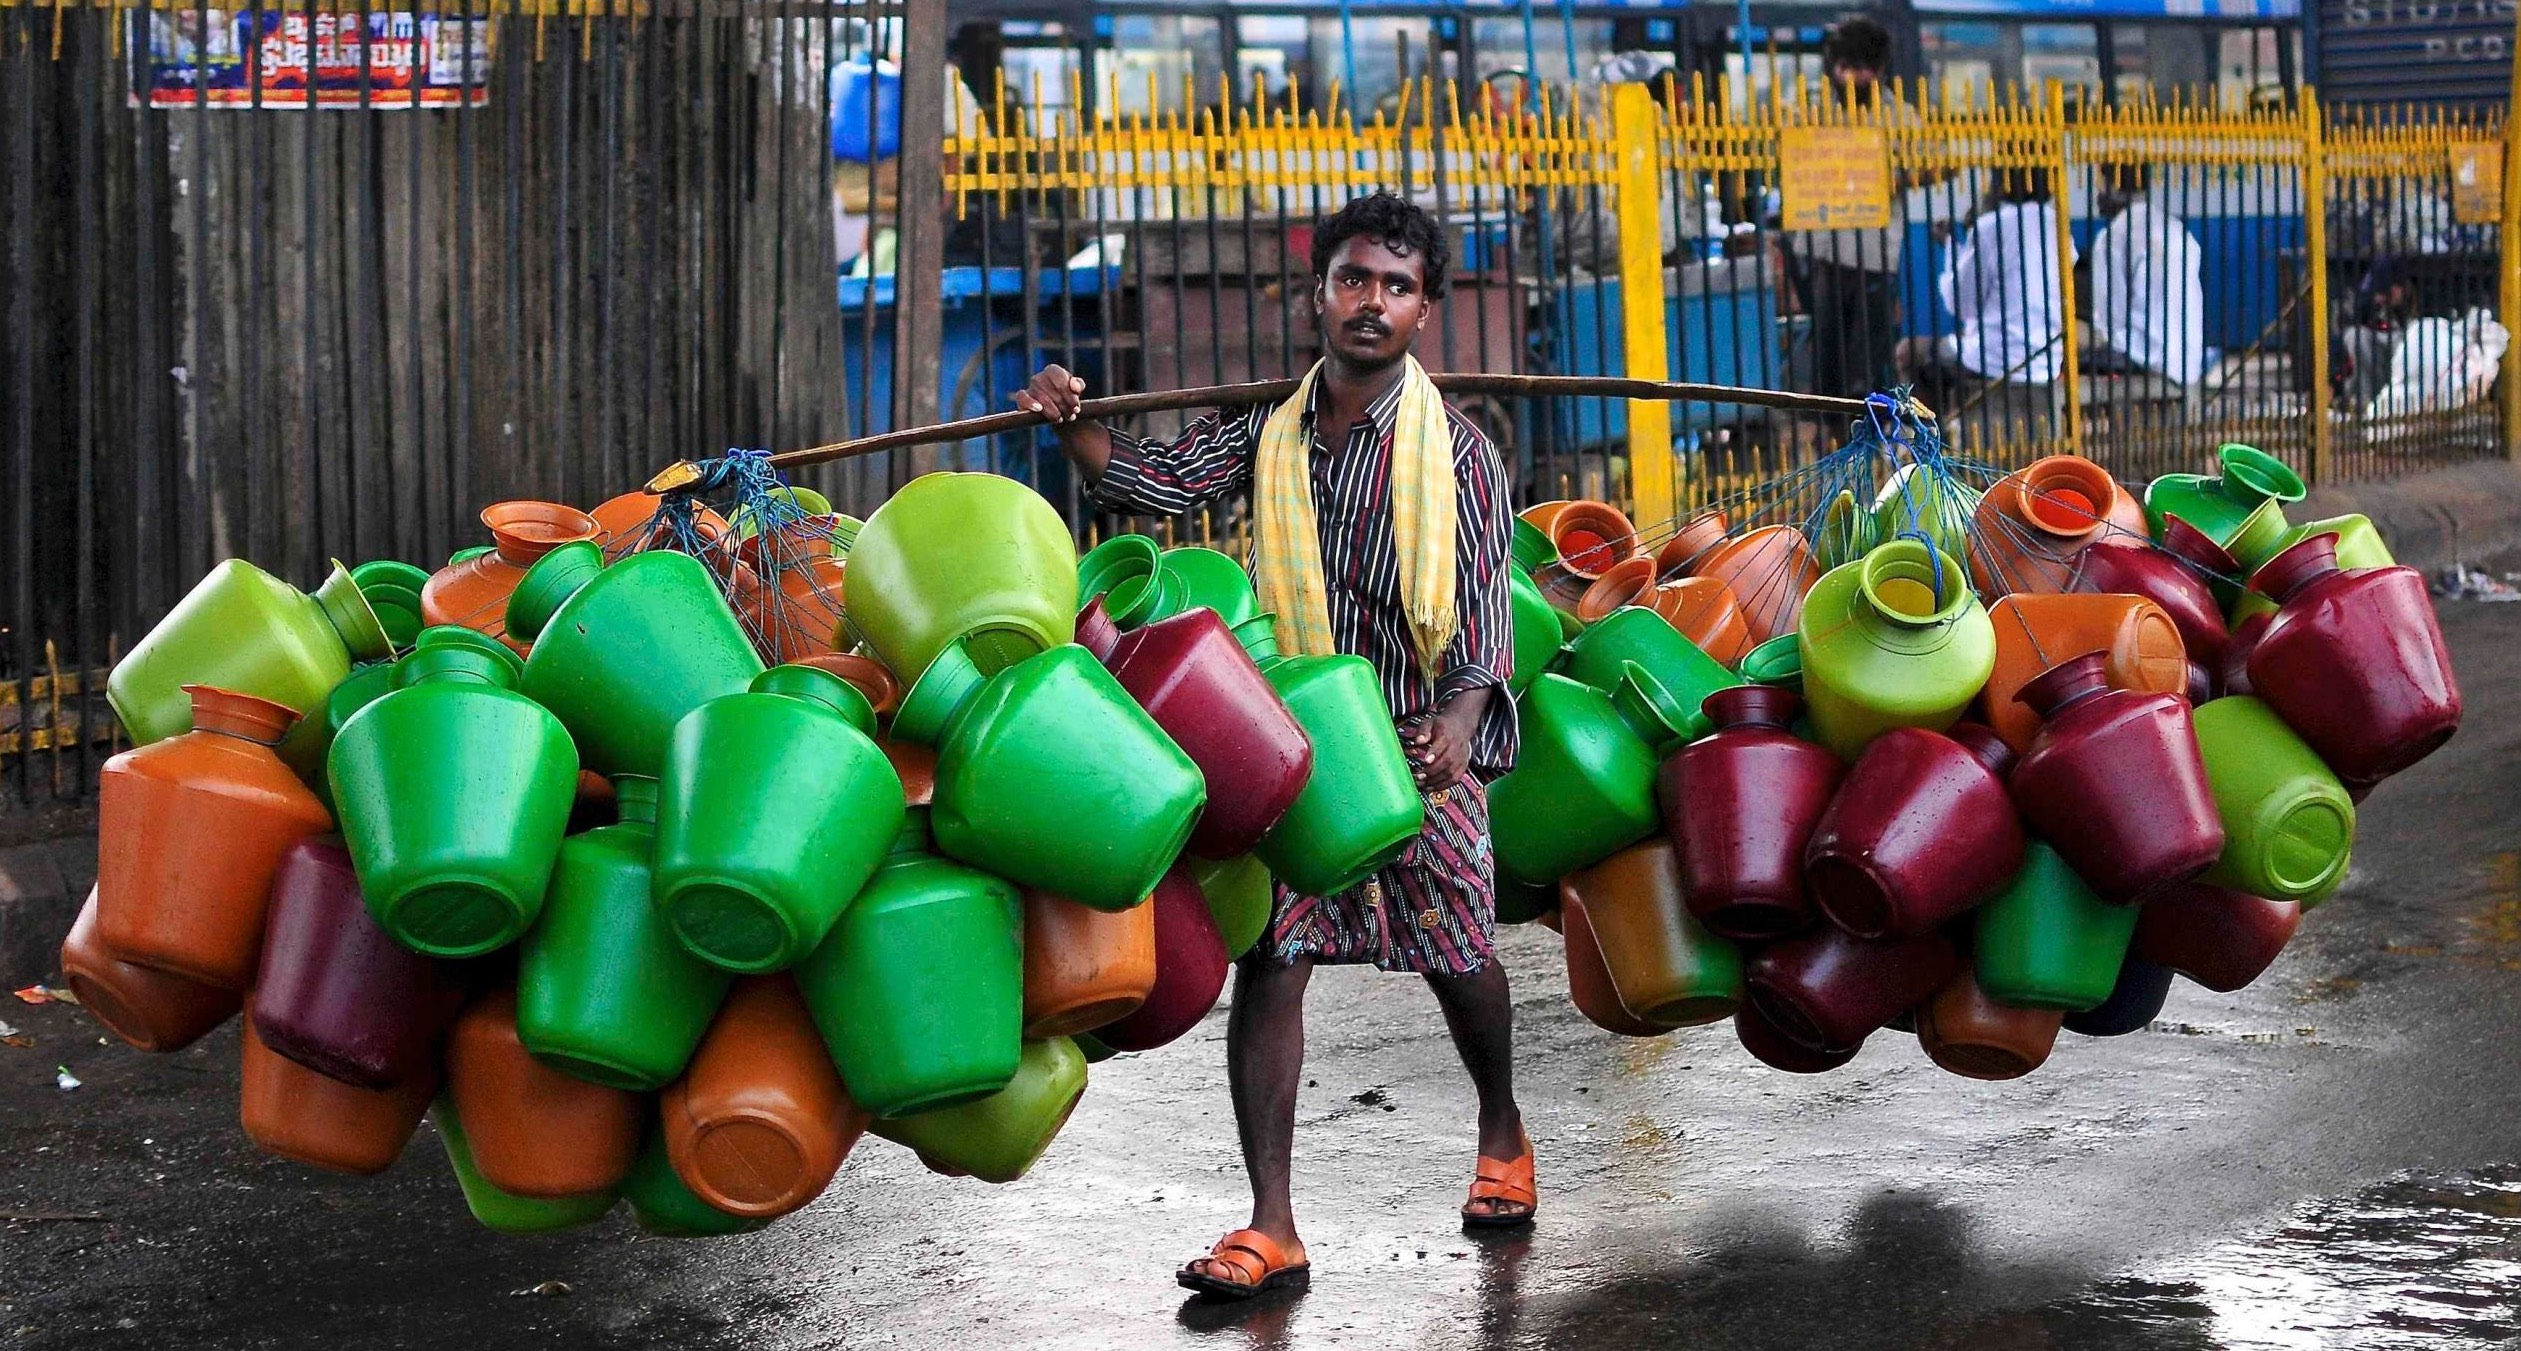 In Parched Bangalore, Low-Income Communities Work Together to Quench Their Thirst